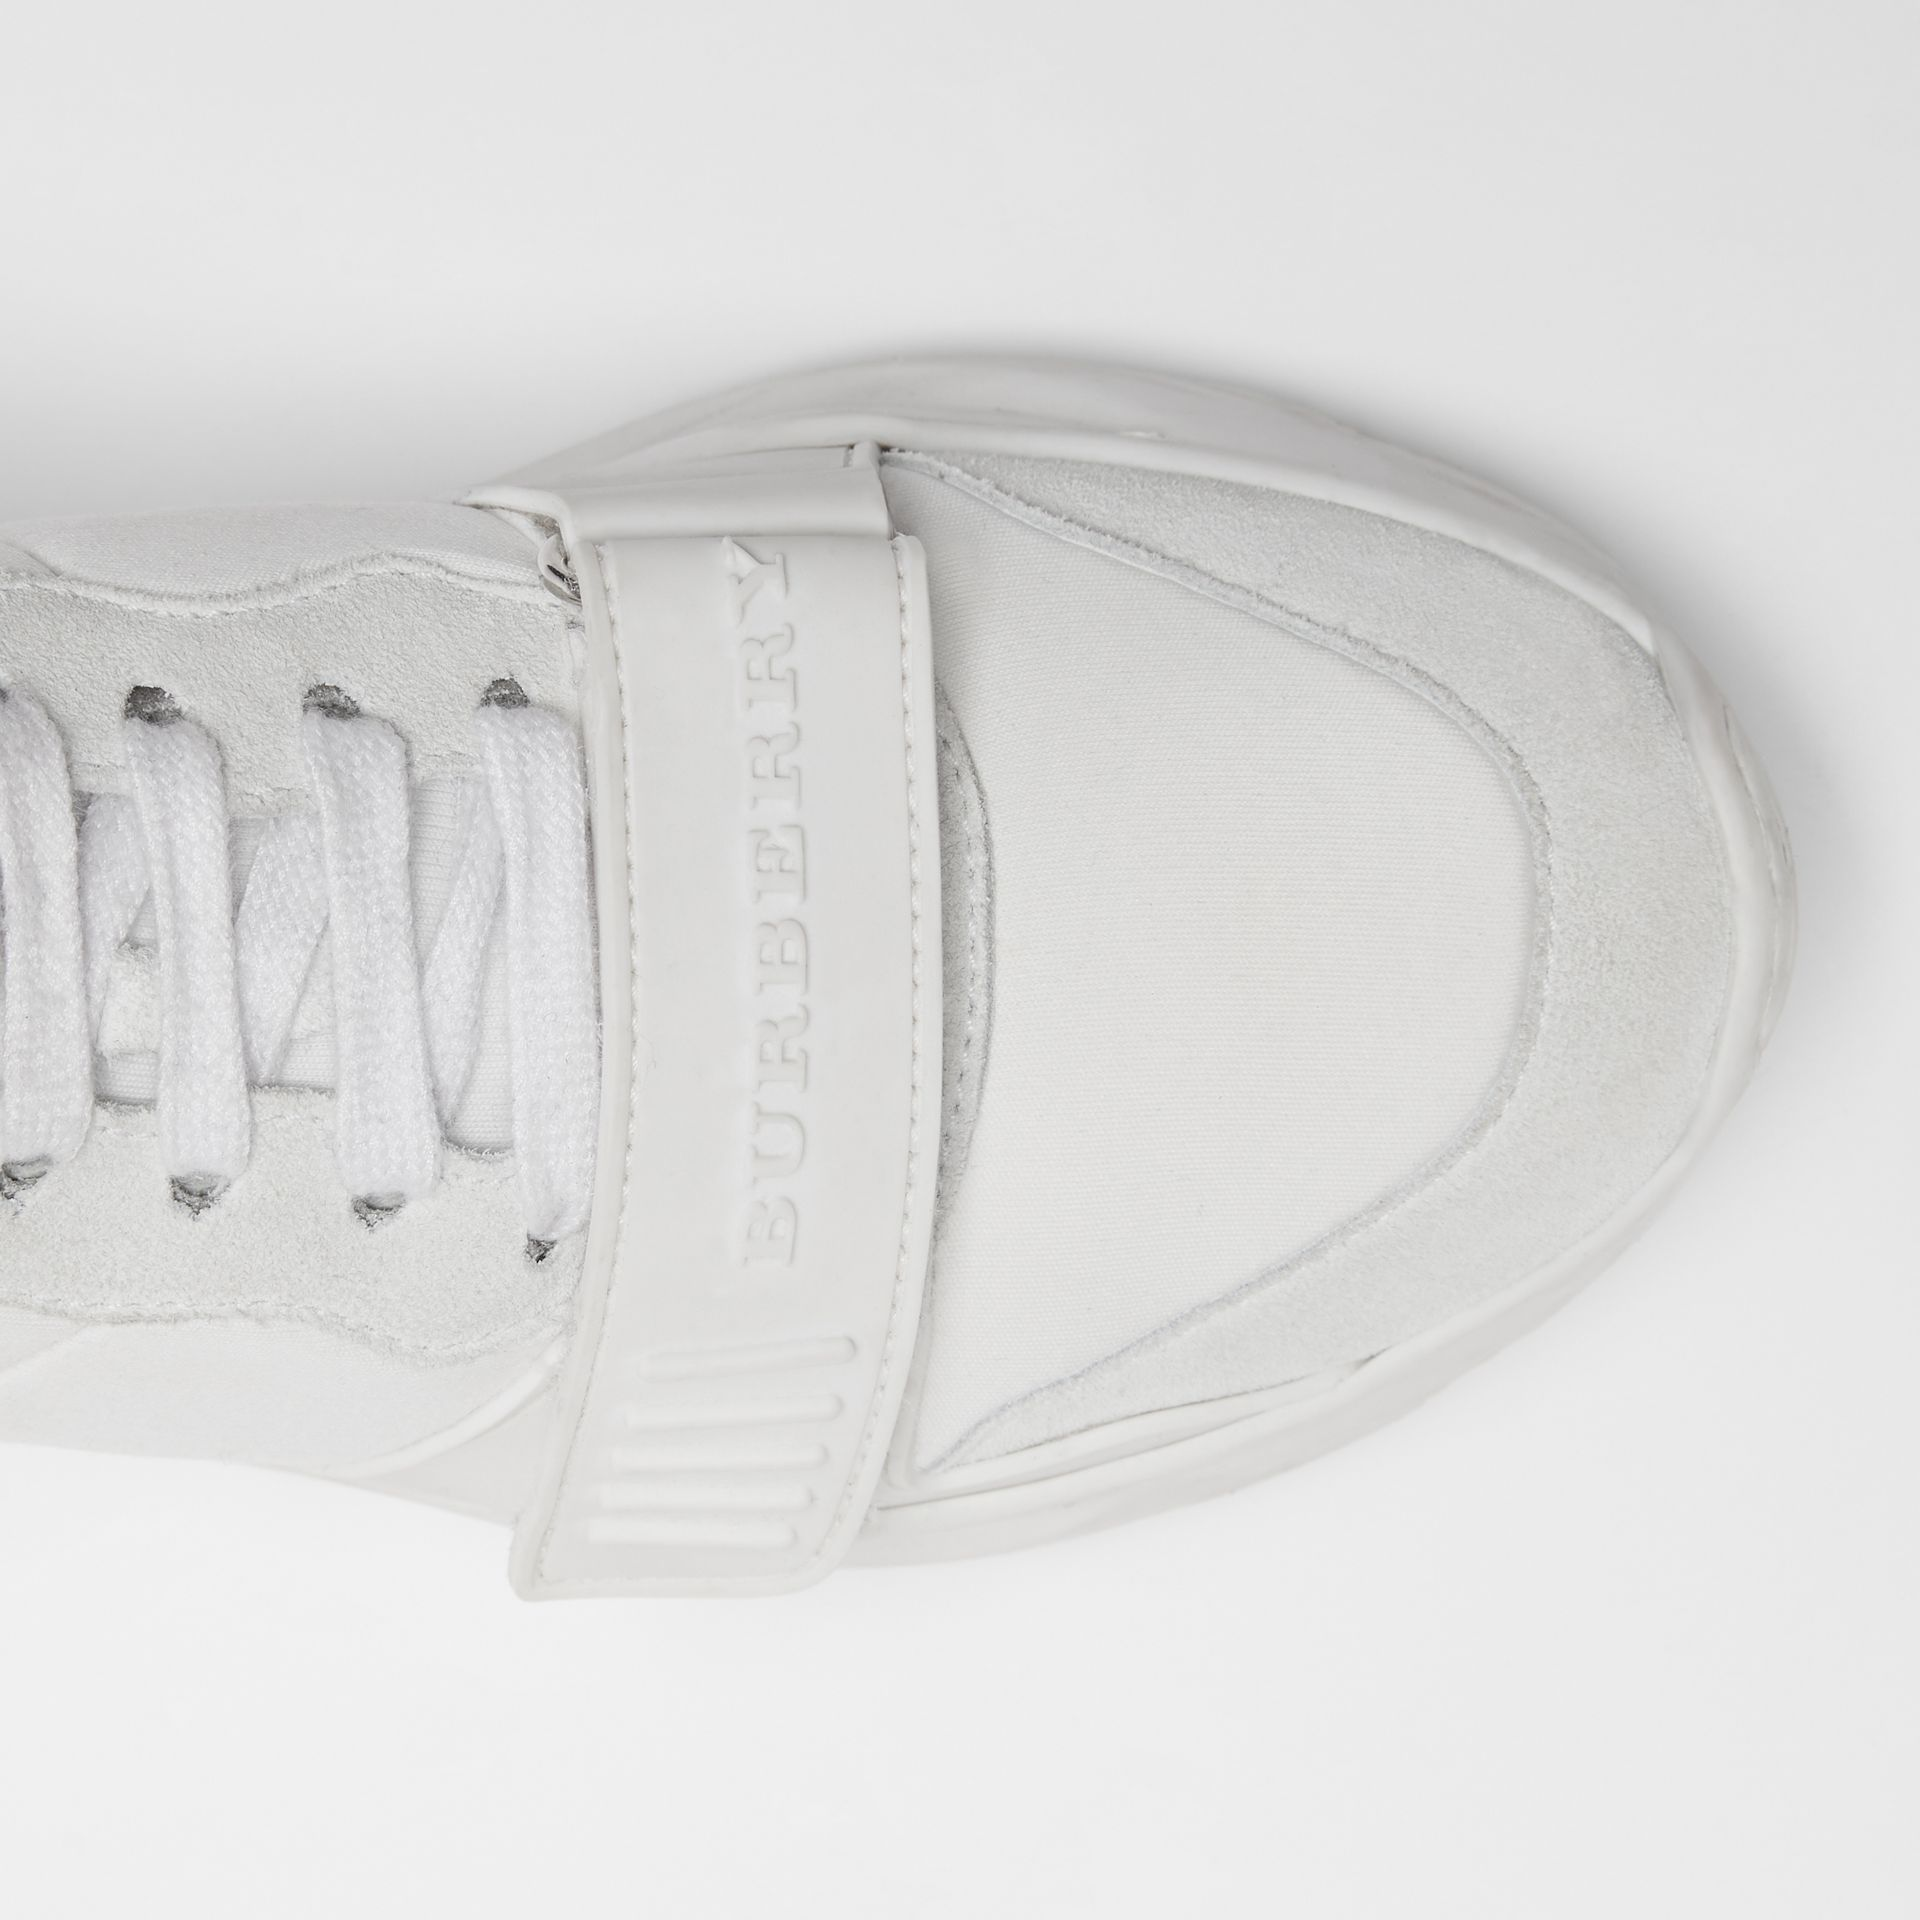 Suede, Neoprene and Leather Sneakers in Optic White - Women | Burberry - gallery image 1